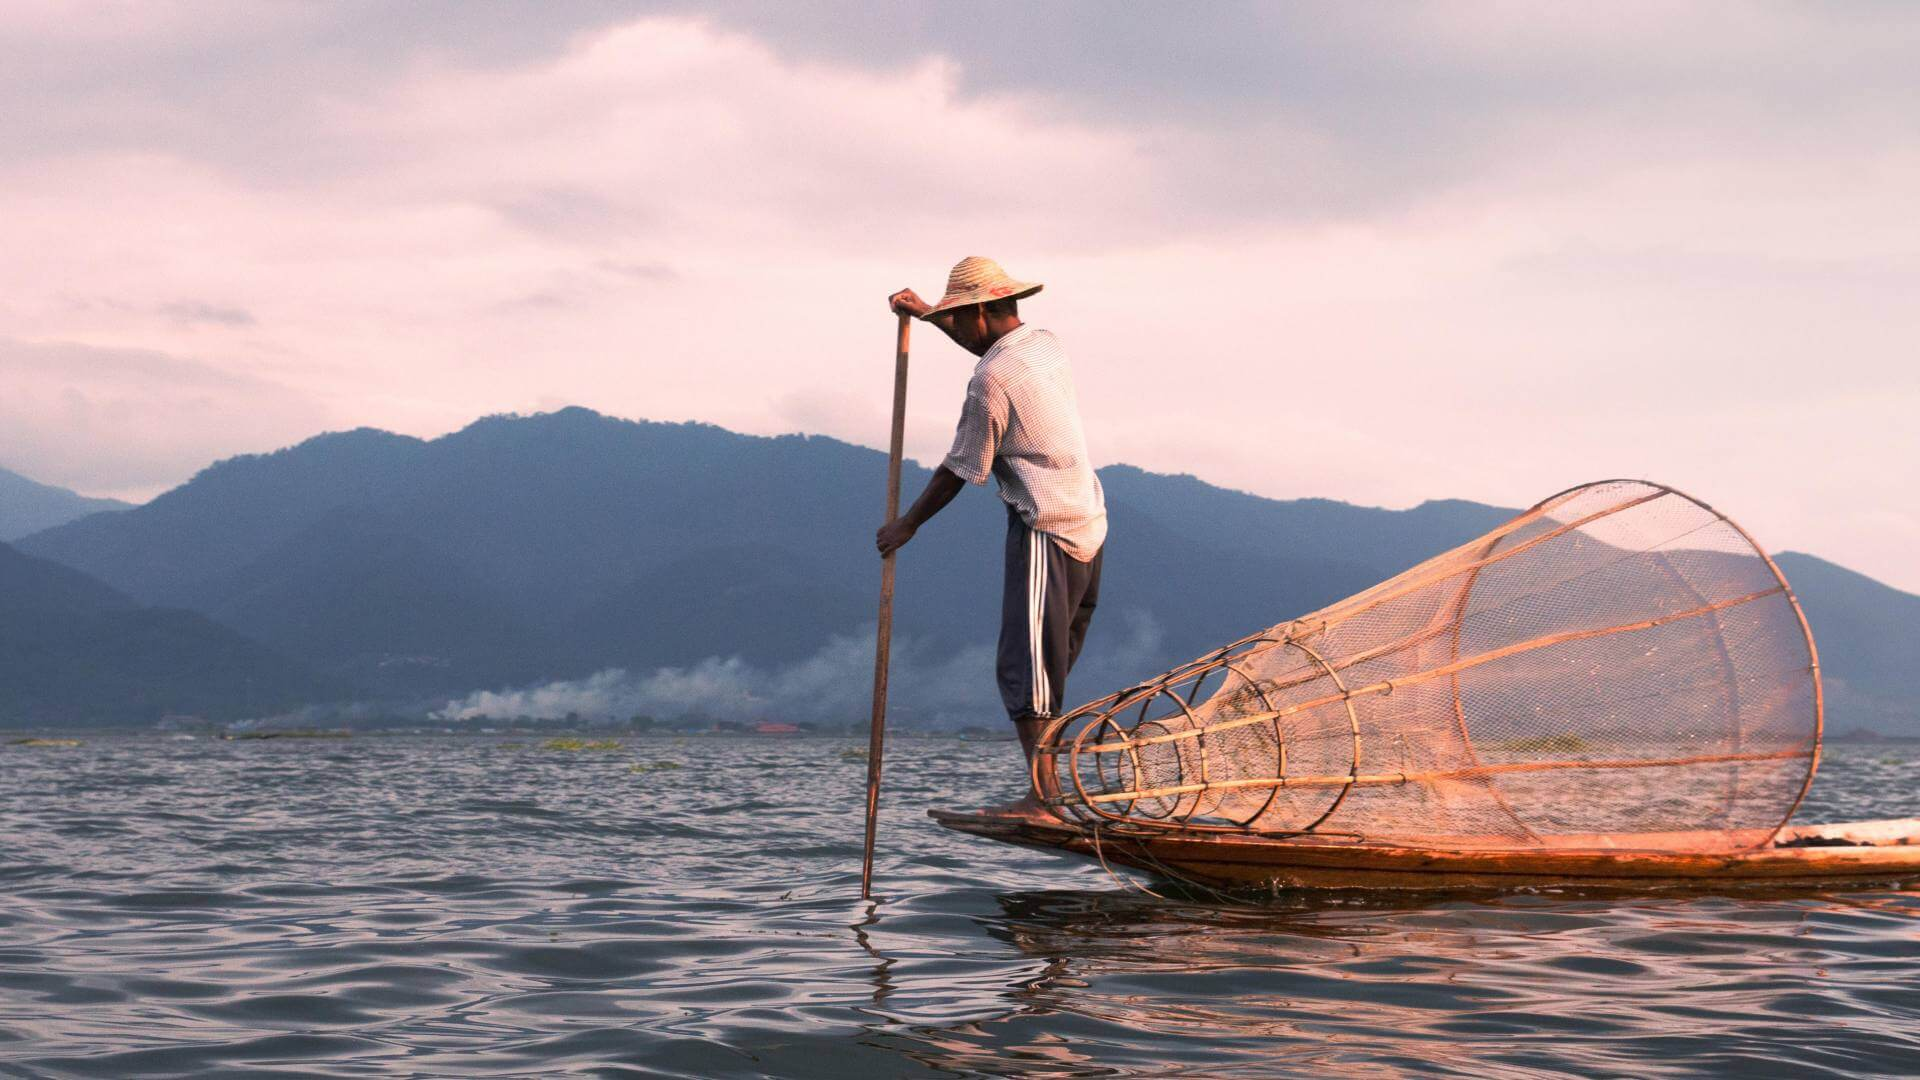 A man on a fishing boat with a straw hat